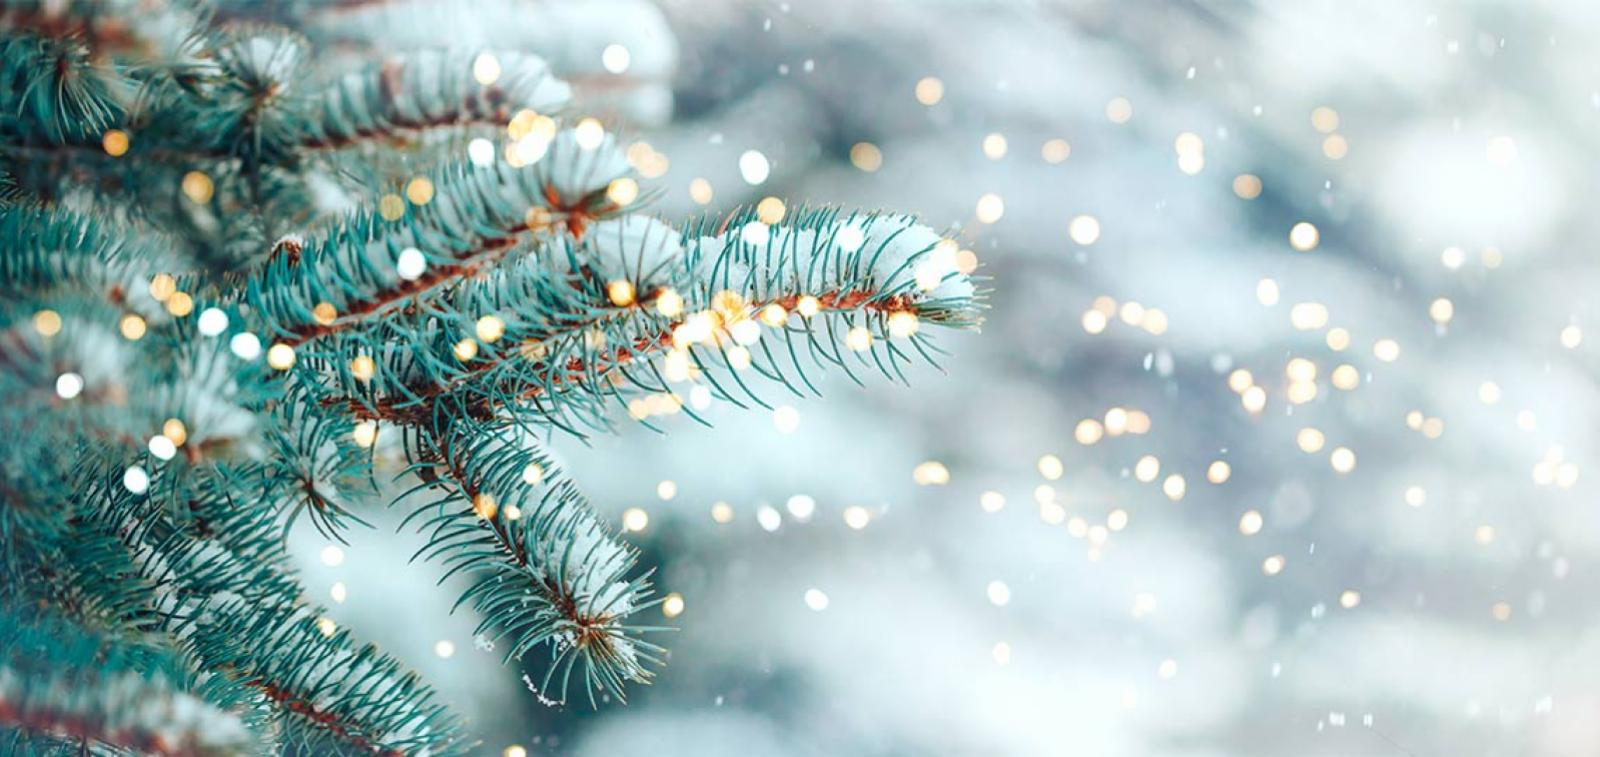 Christmas tree branches covered in snow